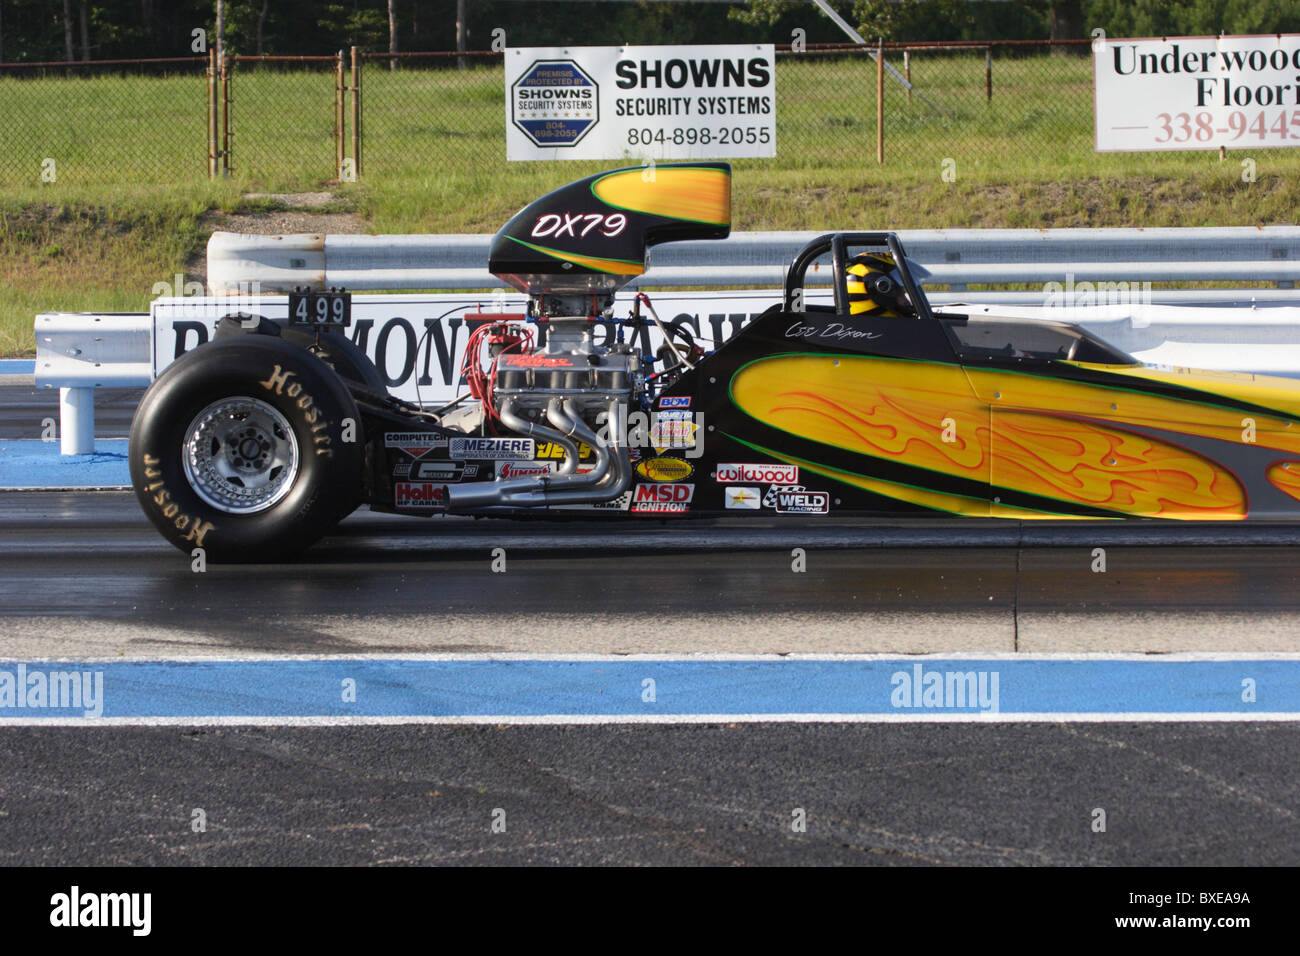 dragster preparing to race at richmond dragway in sandston, virginia